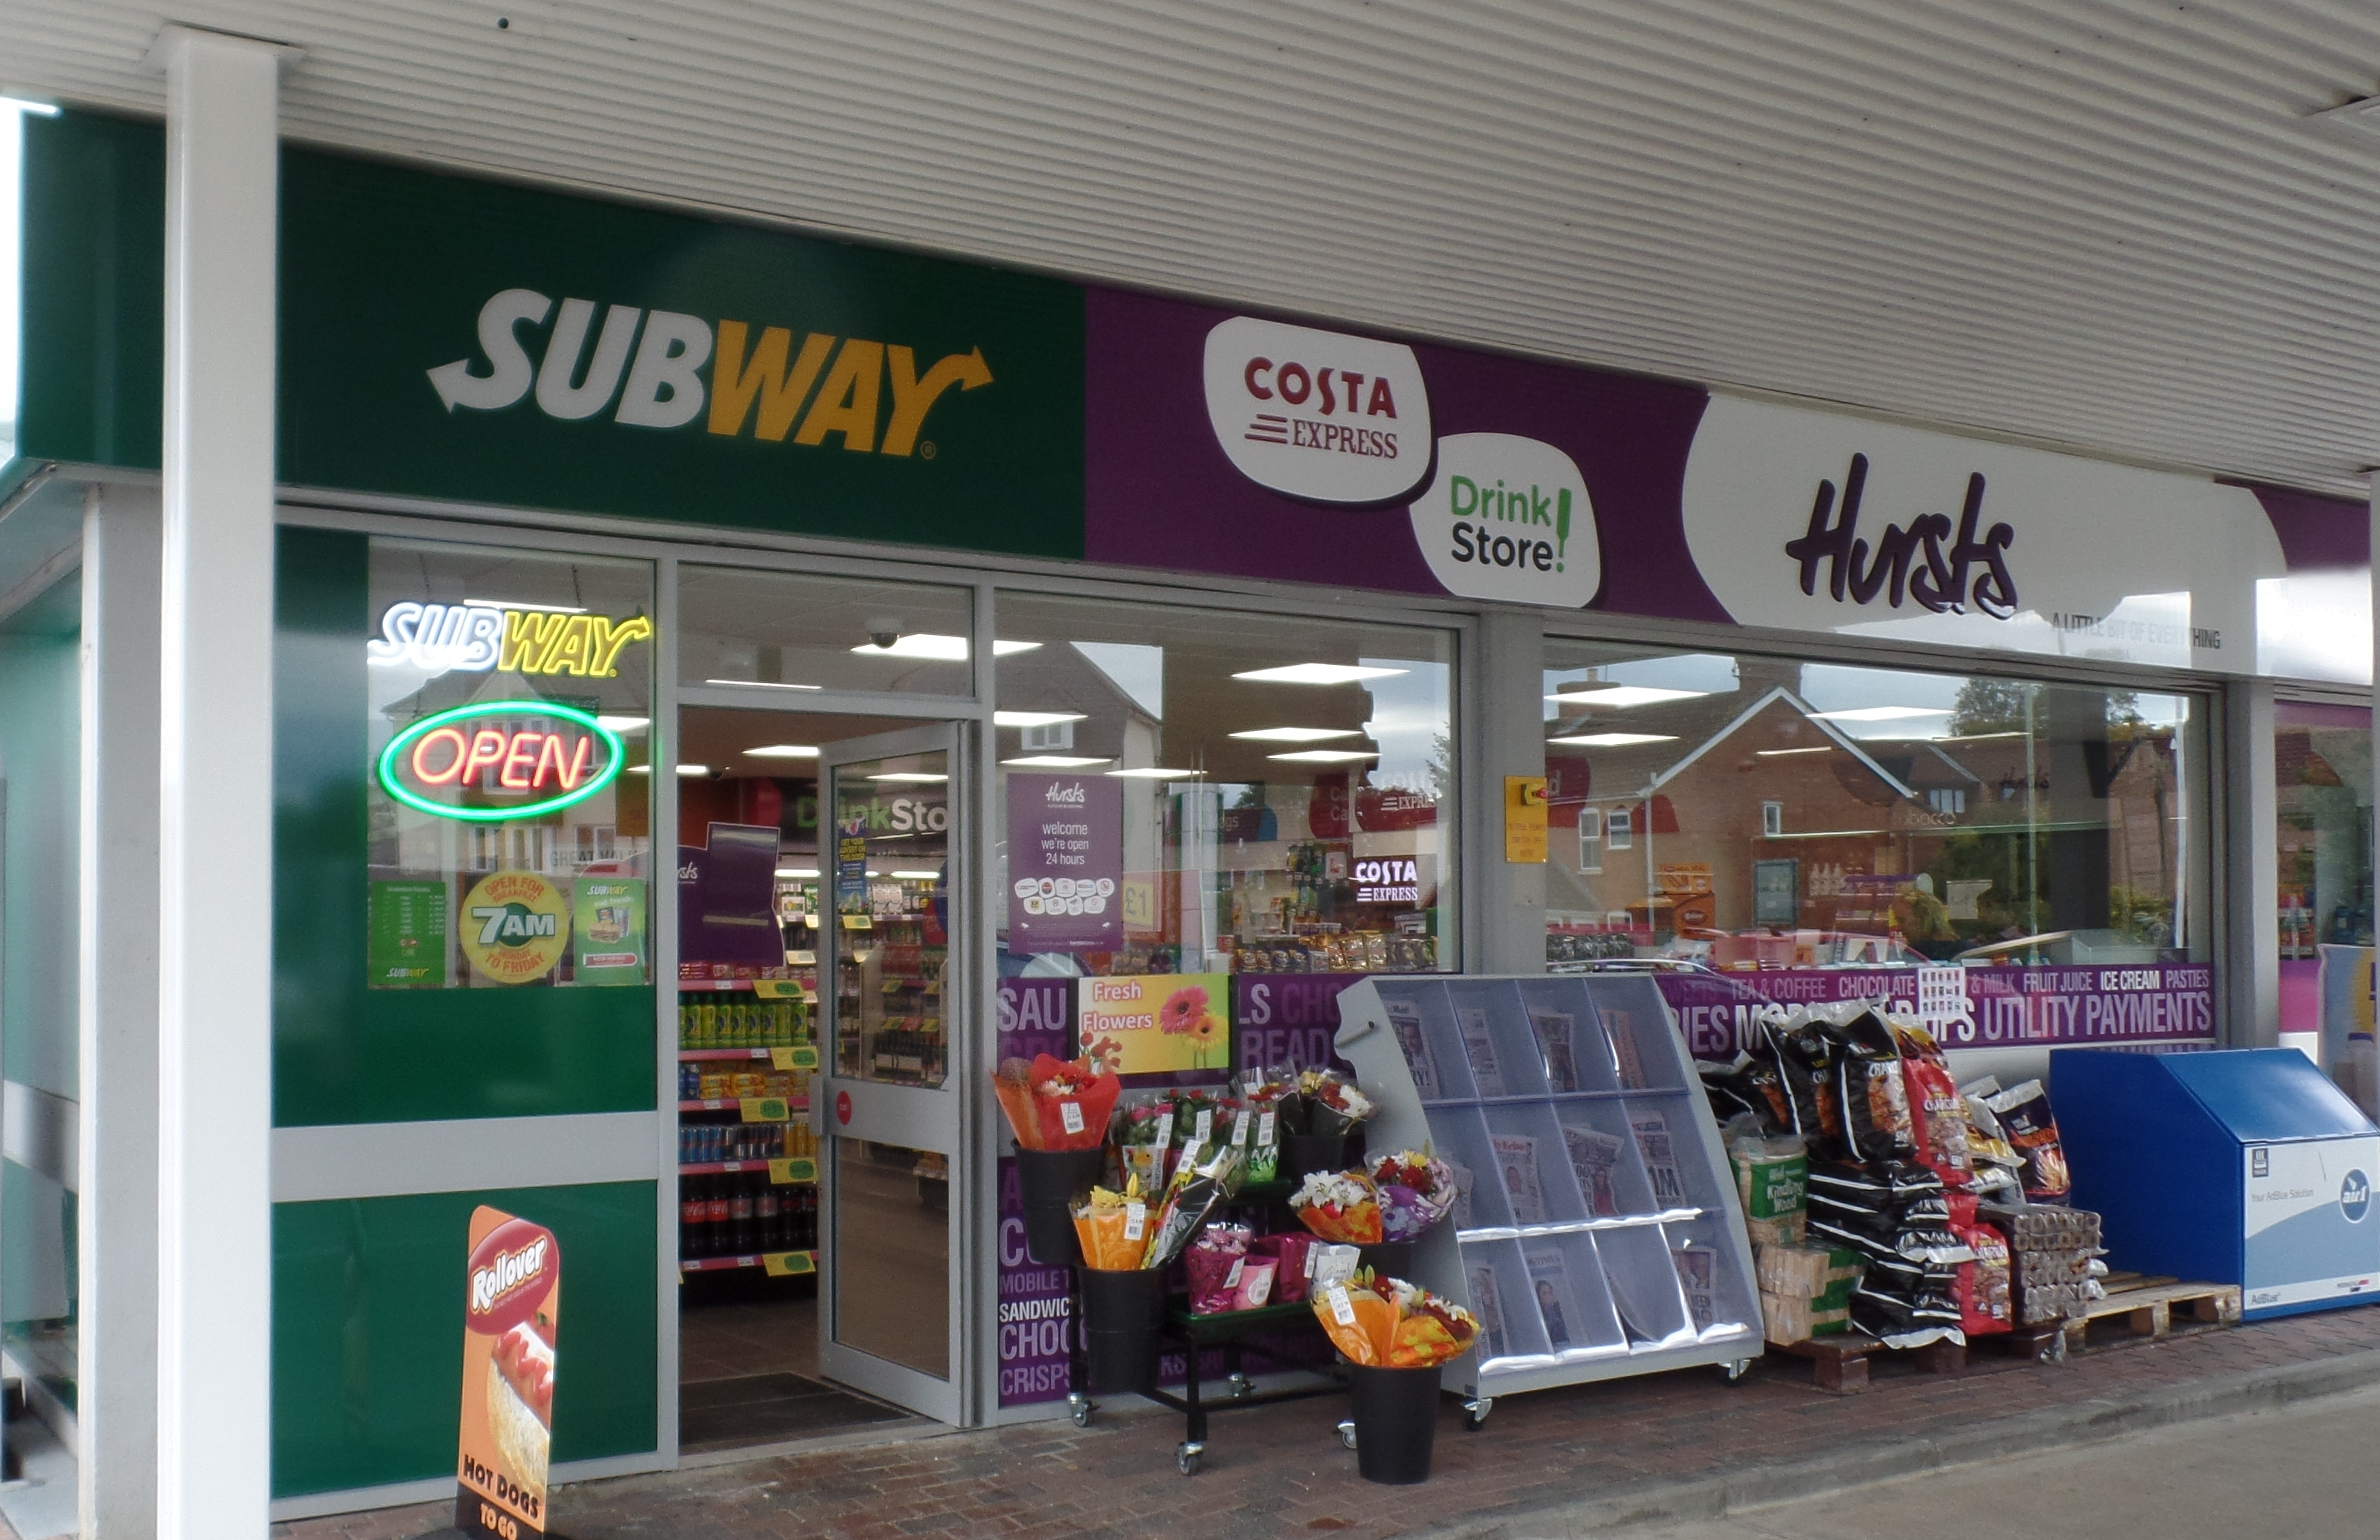 MRH Munros Corner Subway and Hursts shop